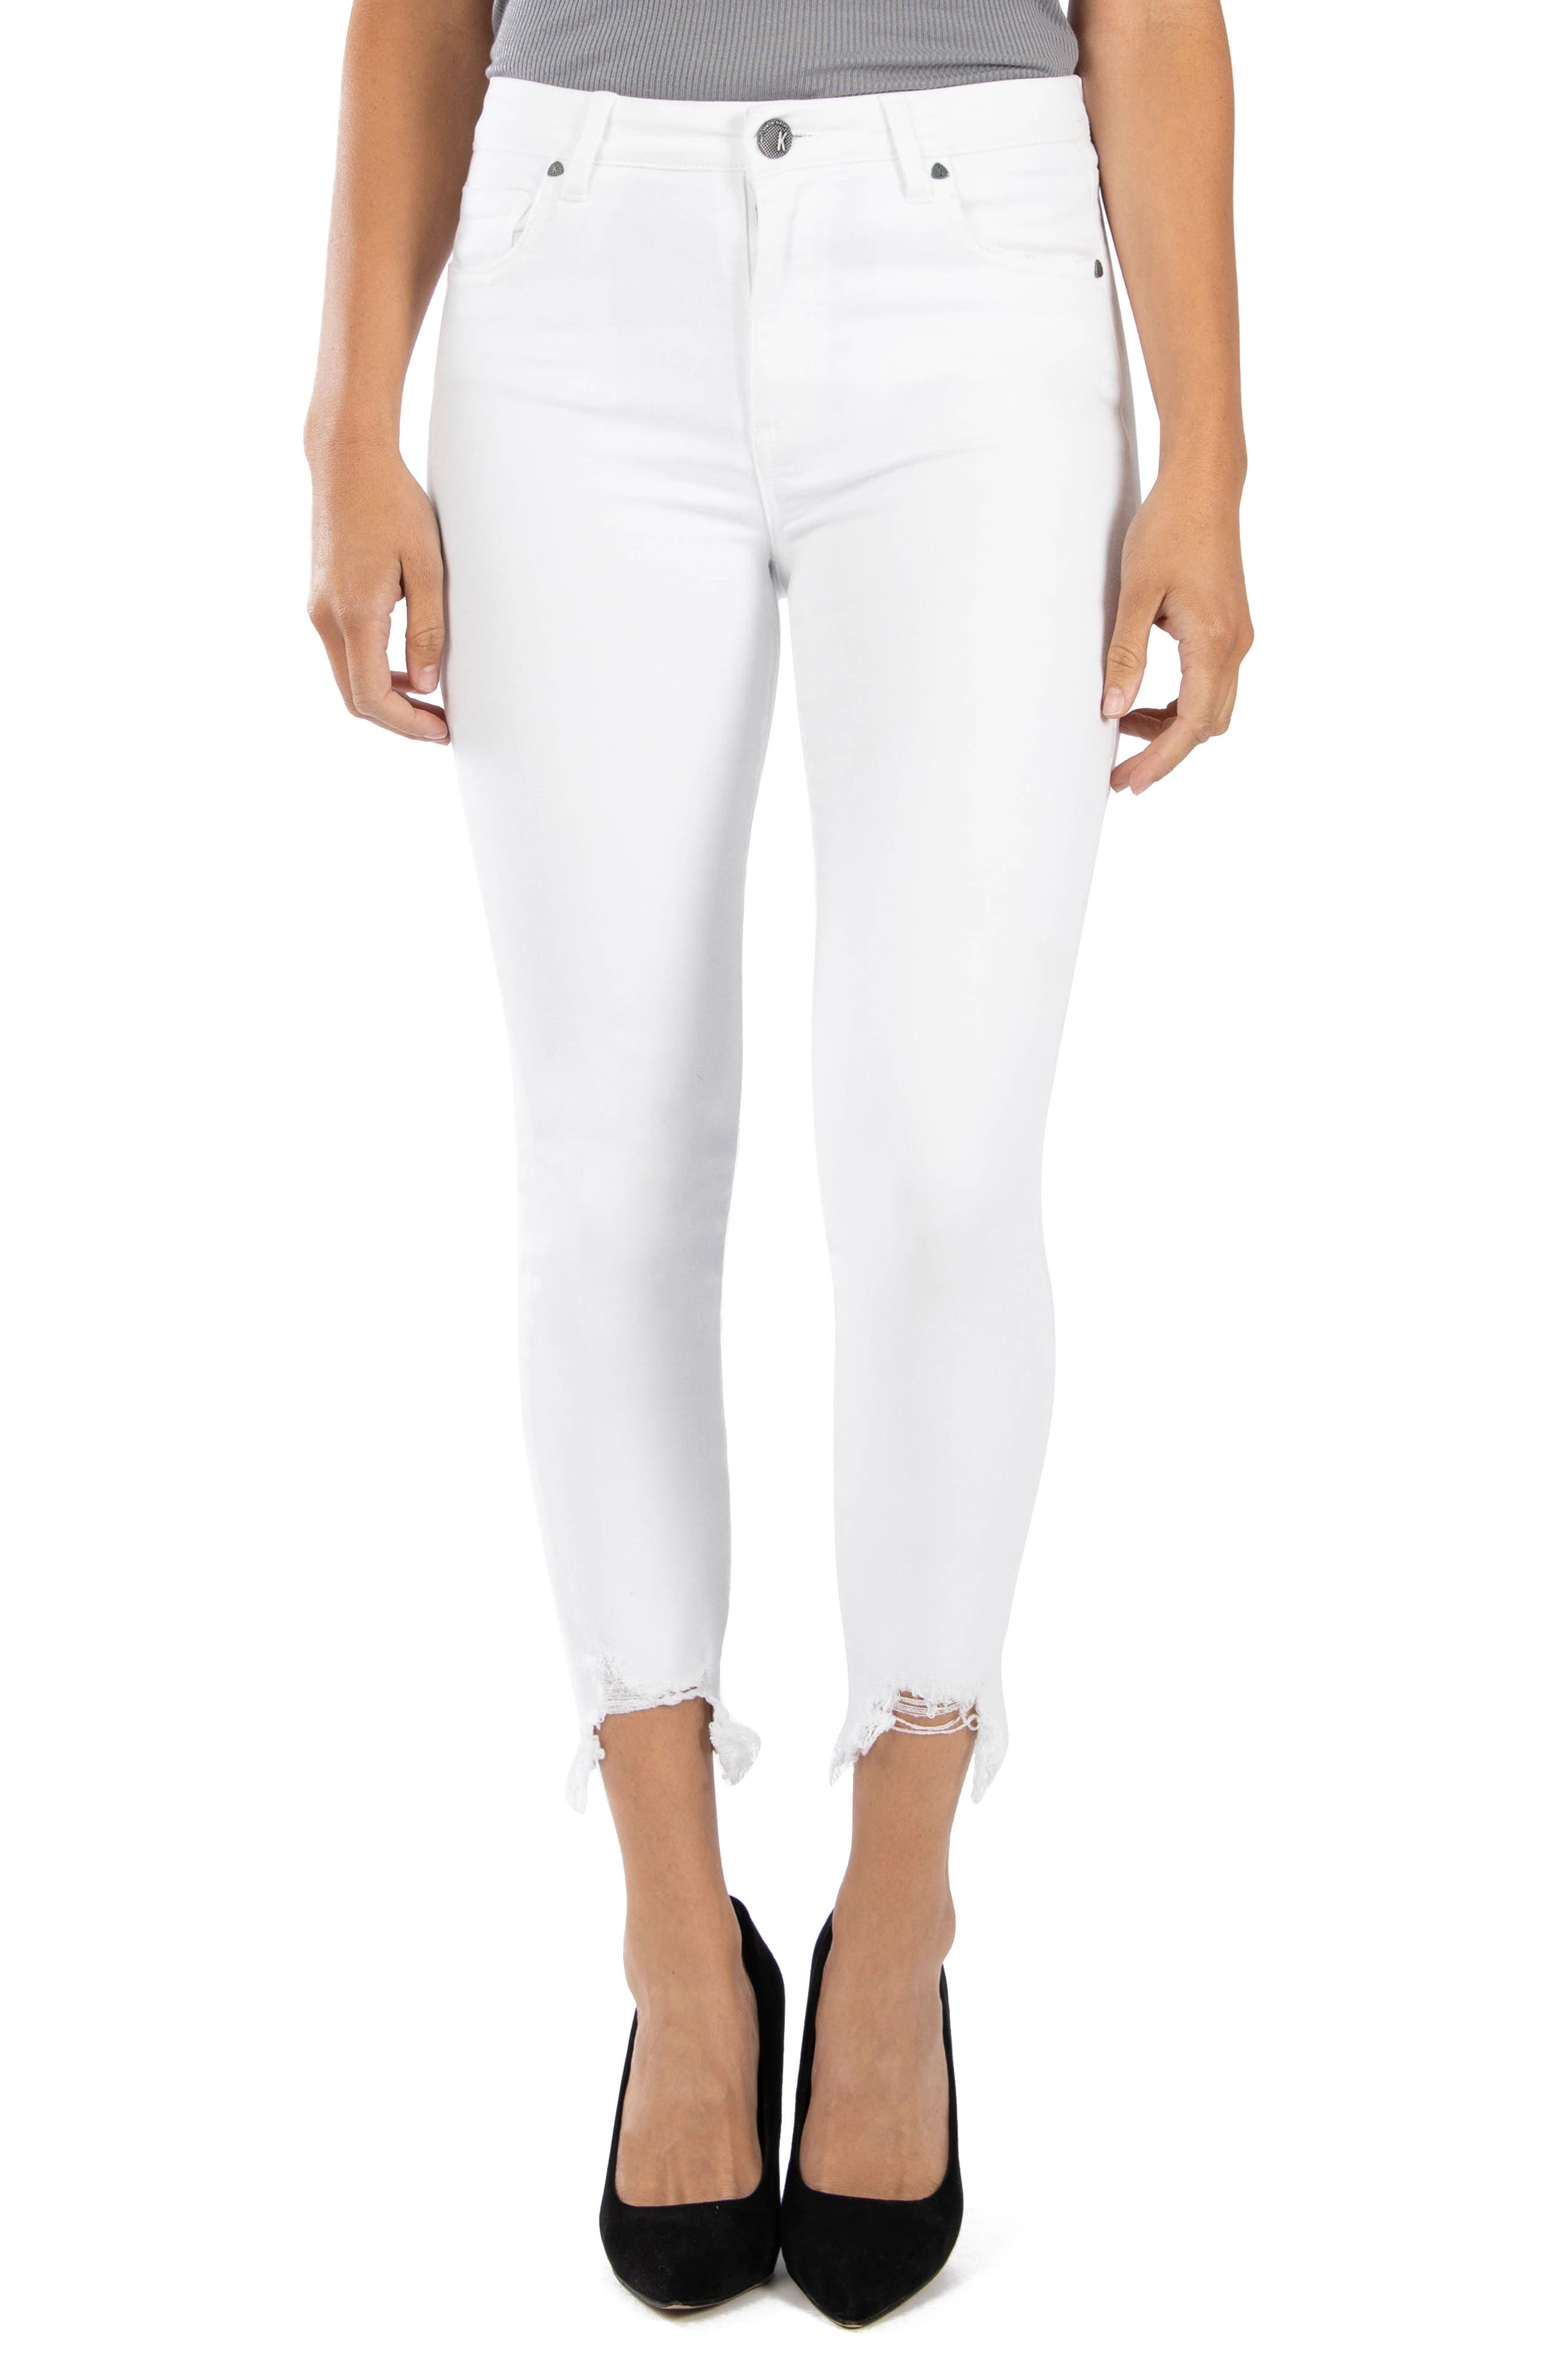 Kut From The Kloth CONNIE HIGH WAIST CHEW HEM ANKLE SKINNY JEANS